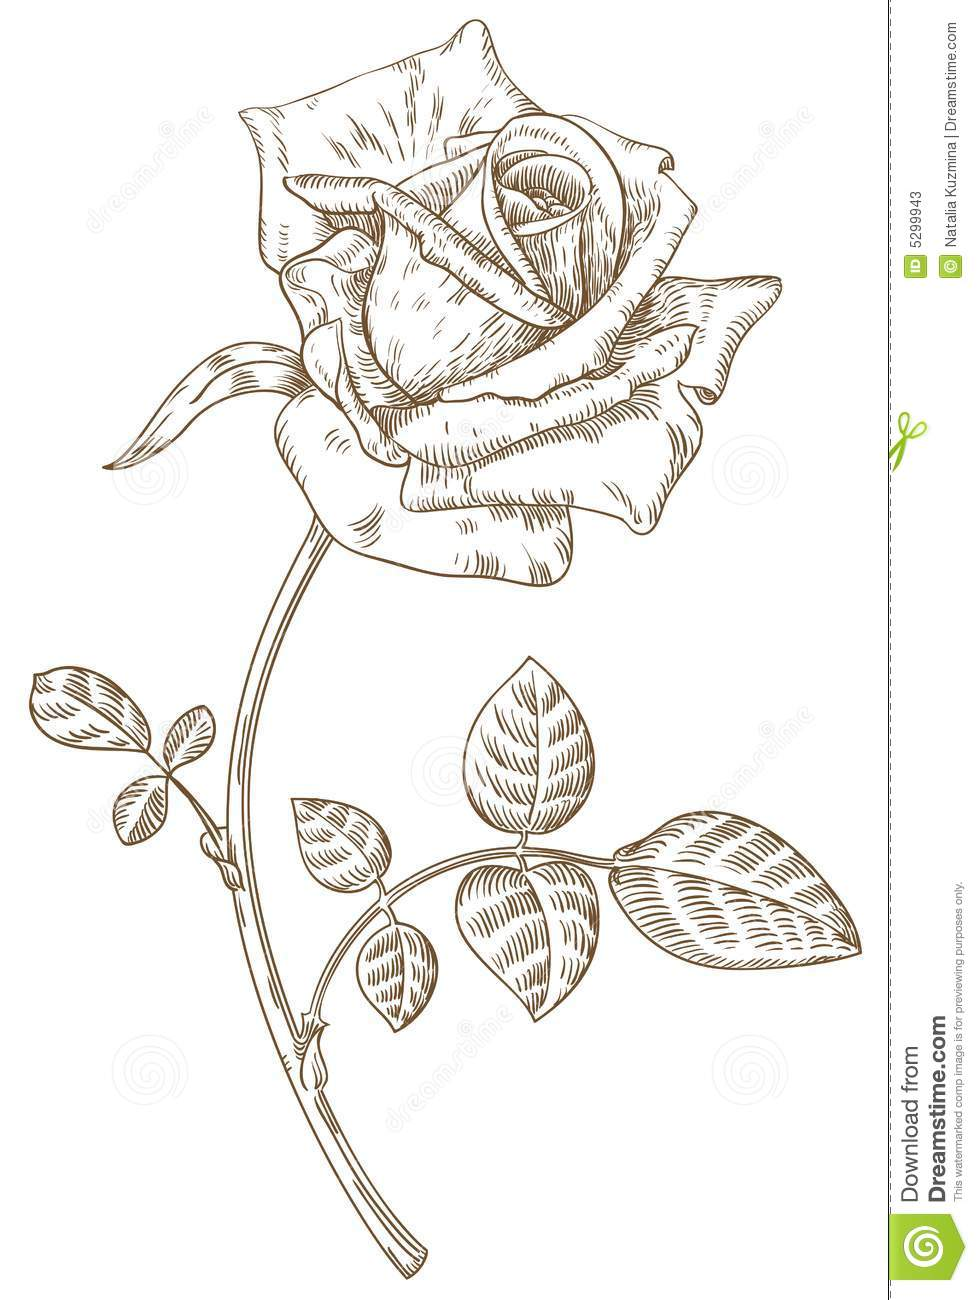 Drawn rose bush one Drawing Outline Outline Rose Realistic